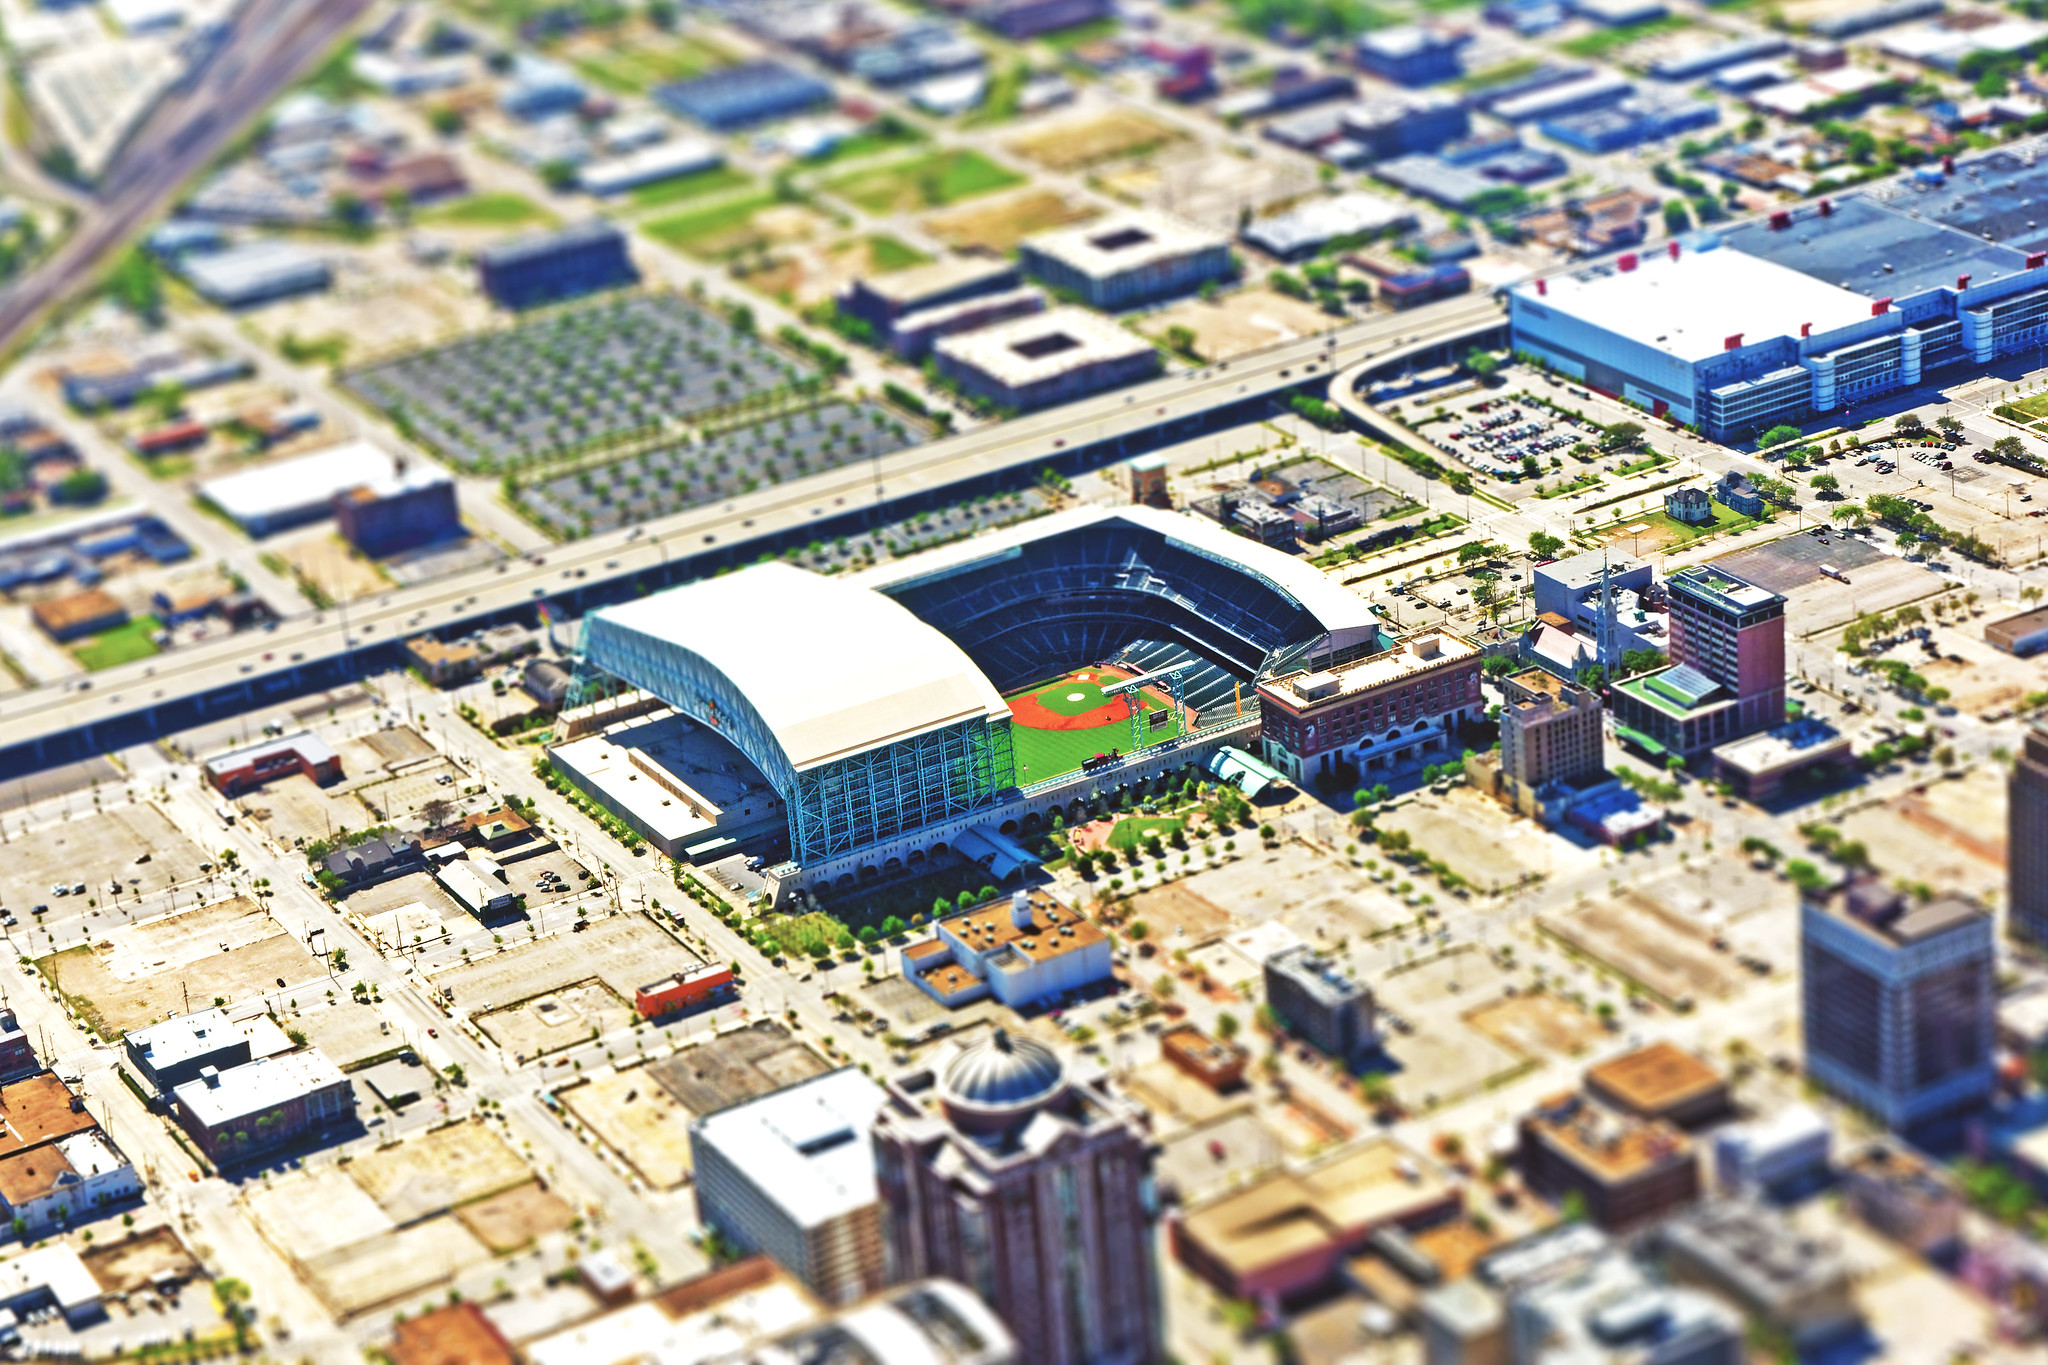 Miniature Minute Maid Park